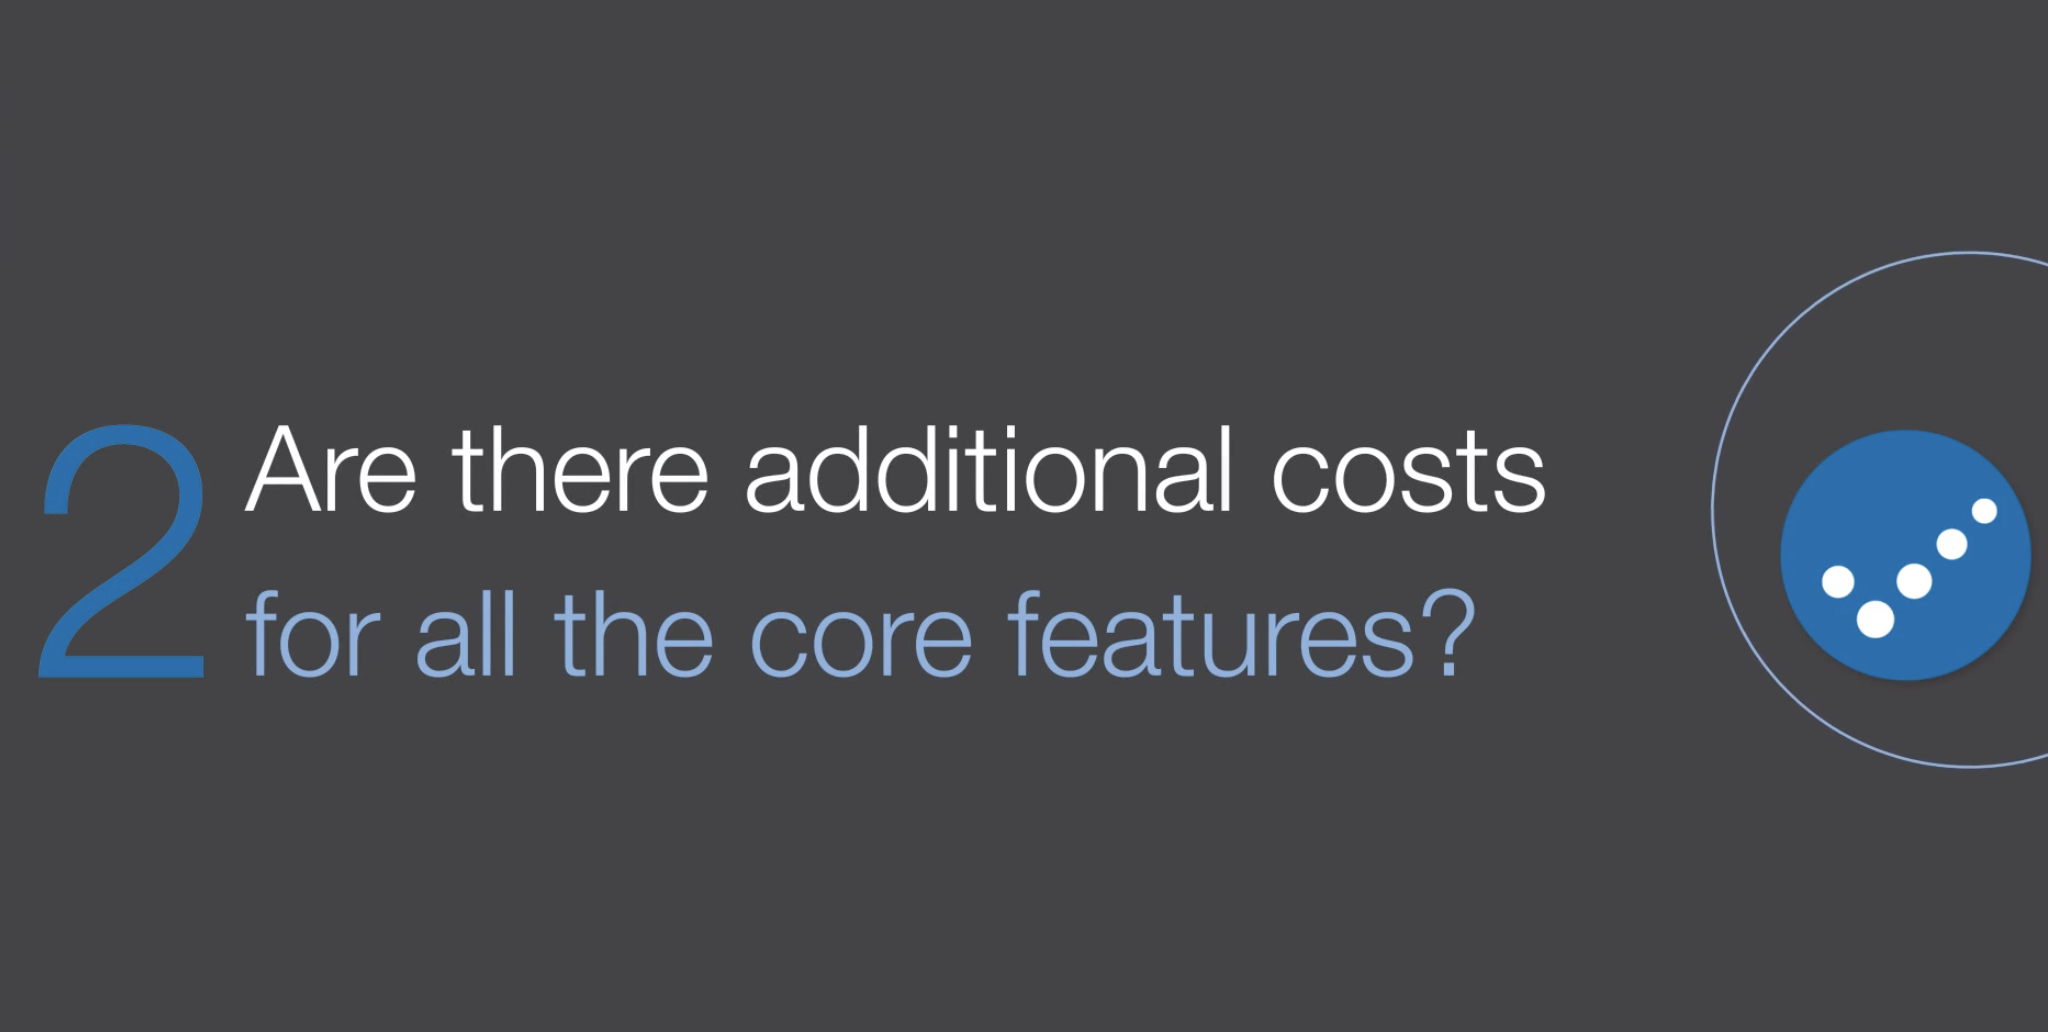 the-top-5-are-there-additional-costs-for-core-features